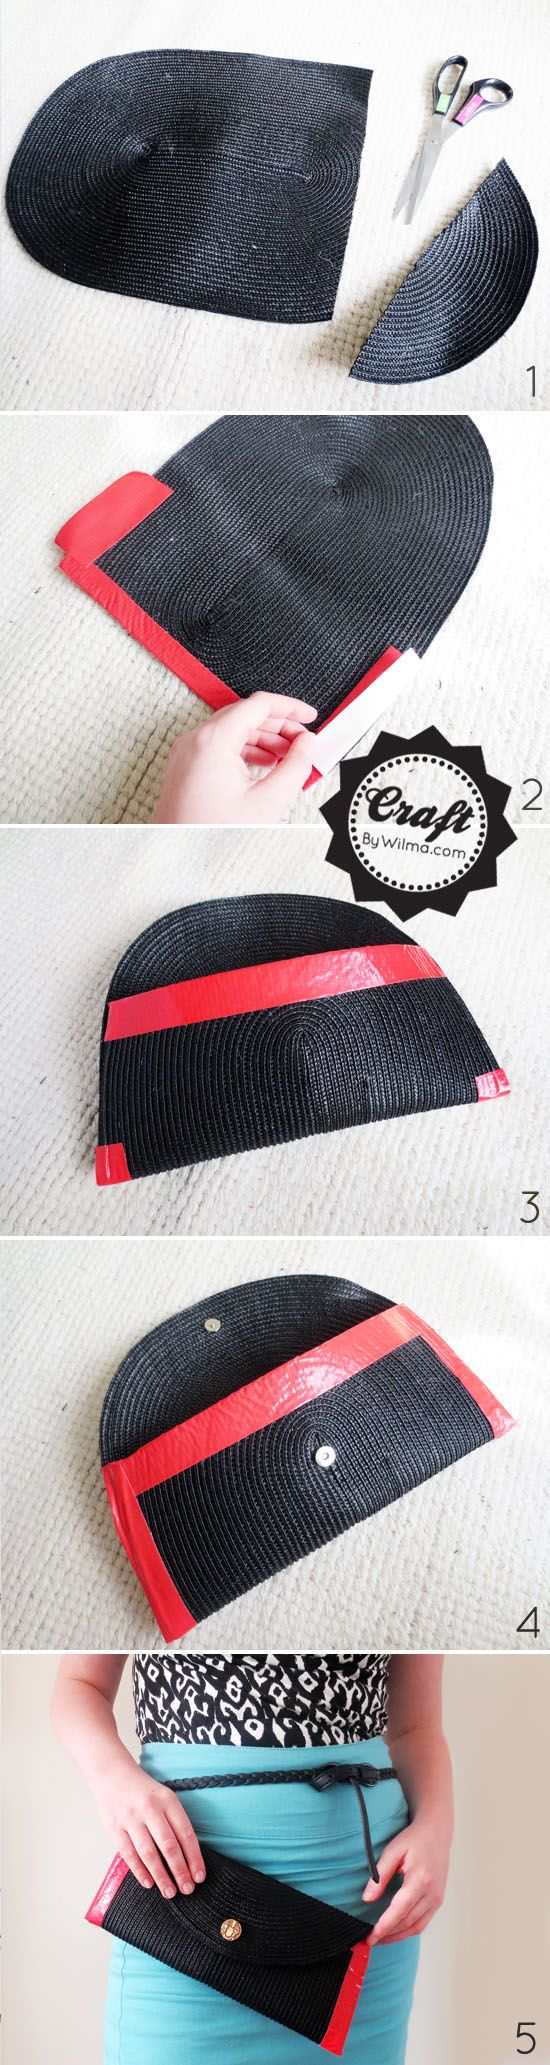 DIY project: duct tape and table-mat clutch | - oval table-mat - duct tape in a nice bright color - scissors - magnetic button - button with flat back (you can flatten the back with a file) - glue gun